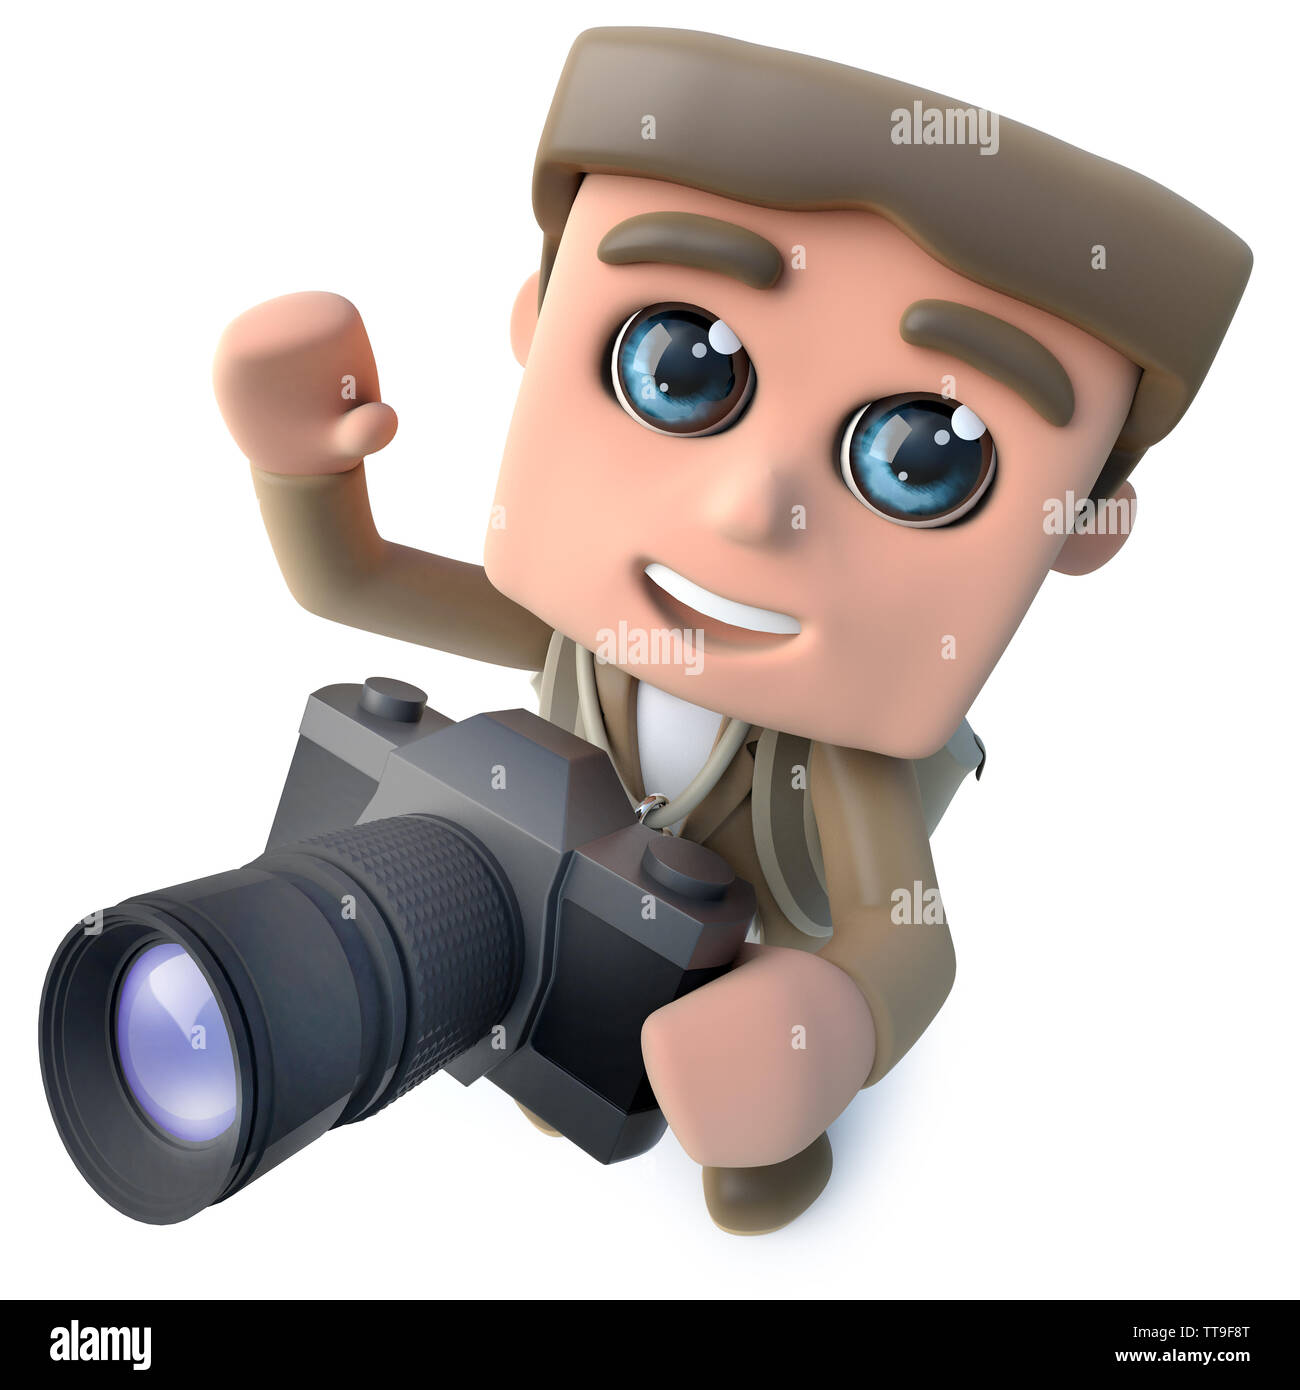 3d render of a funny cartoon hiker adventurer character taking a photo with a camera - Stock Image